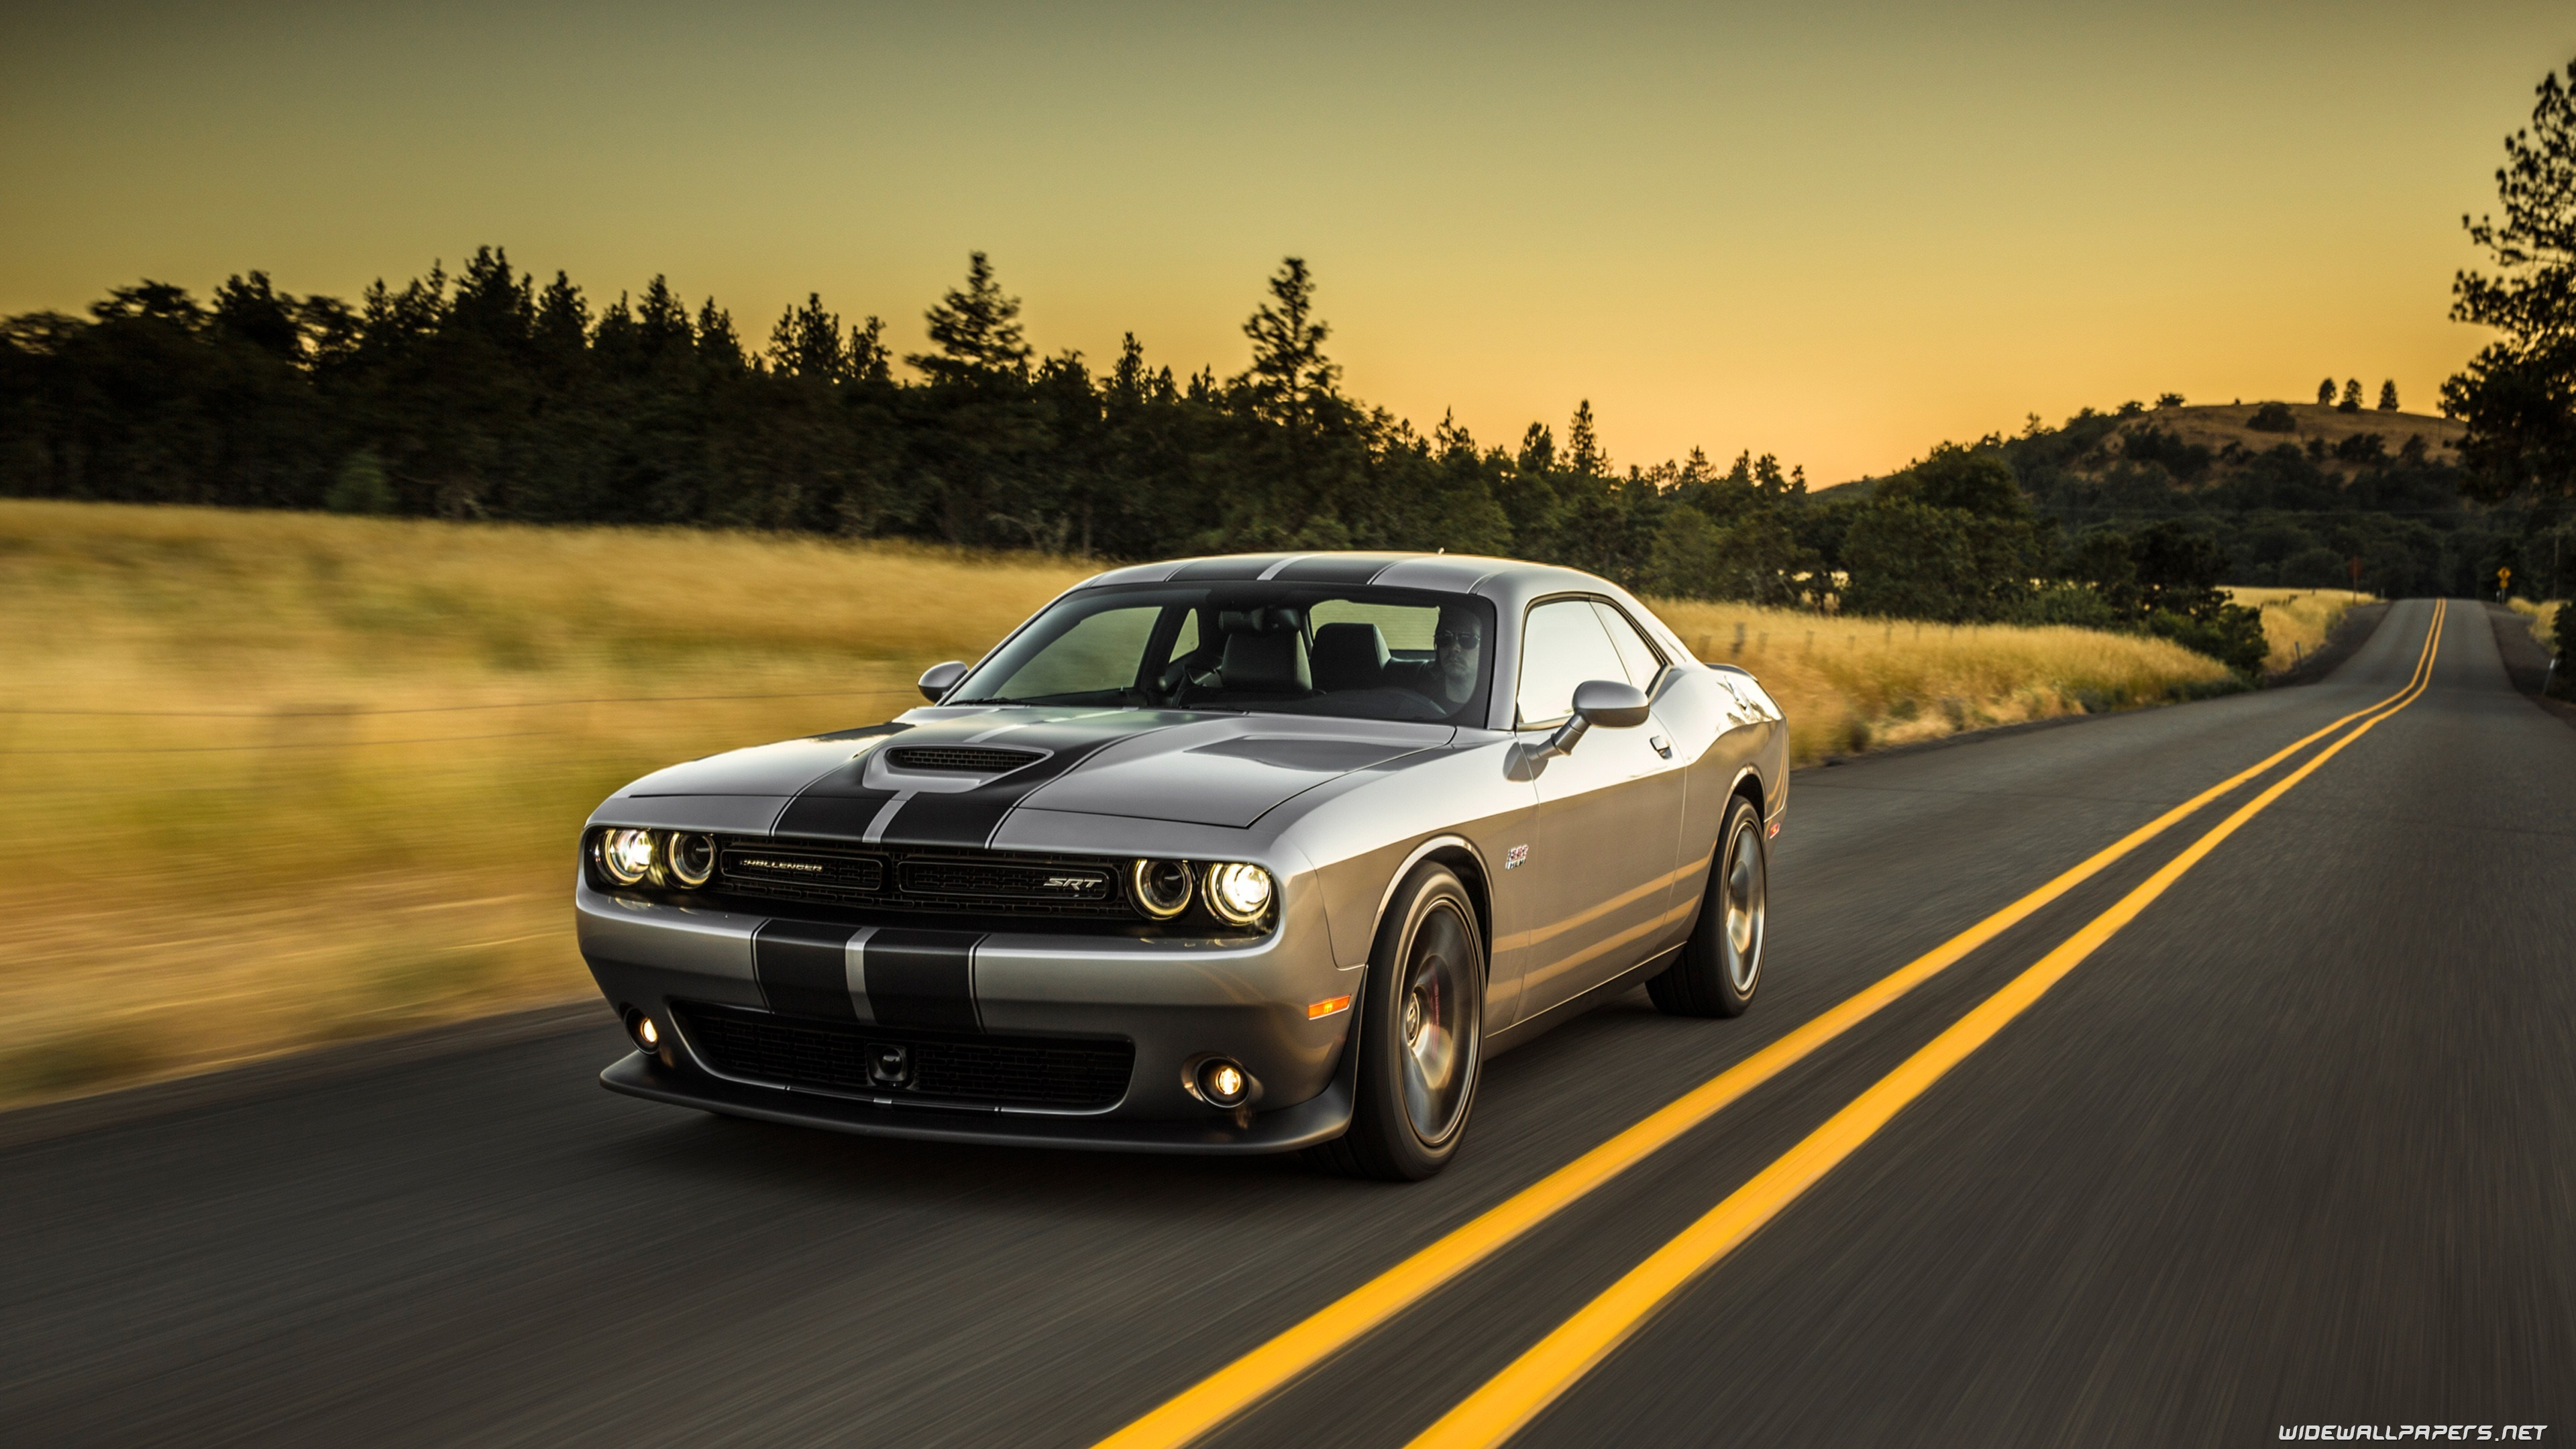 Free Download Dodge Challenger Cars Desktop Wallpapers 4k Ultra Hd Page 3 3840x2160 For Your Desktop Mobile Tablet Explore 66 Car Desktop Wallpaper Cool Cars Wallpaper Classic Car Wallpapers